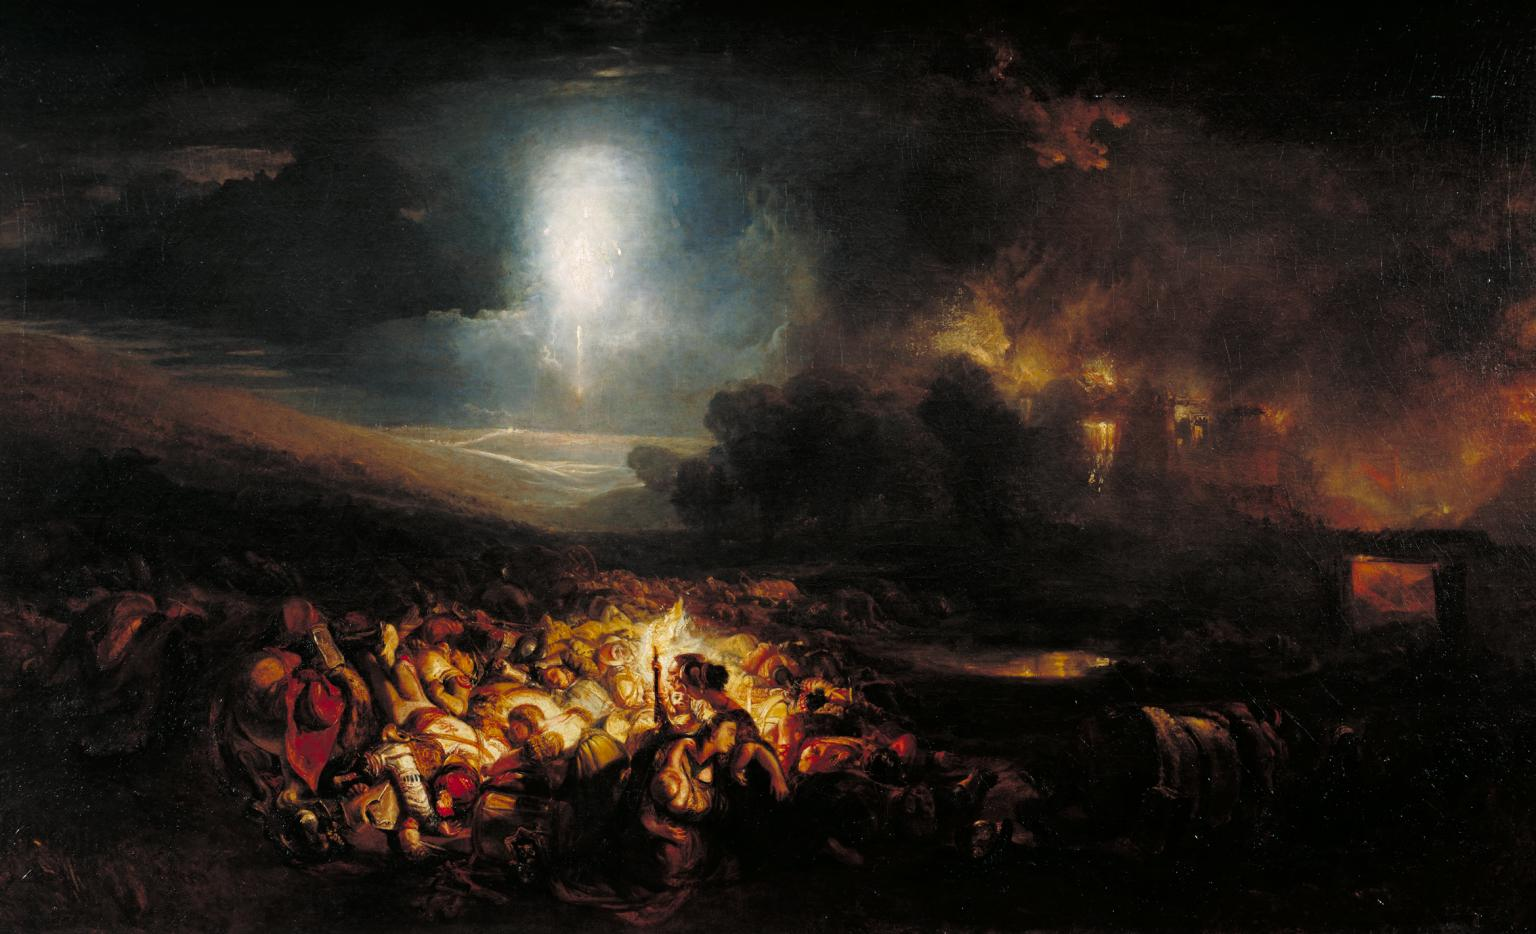 a drak painting showing wounded and dying soldiers on a battlefield lit by moonlight